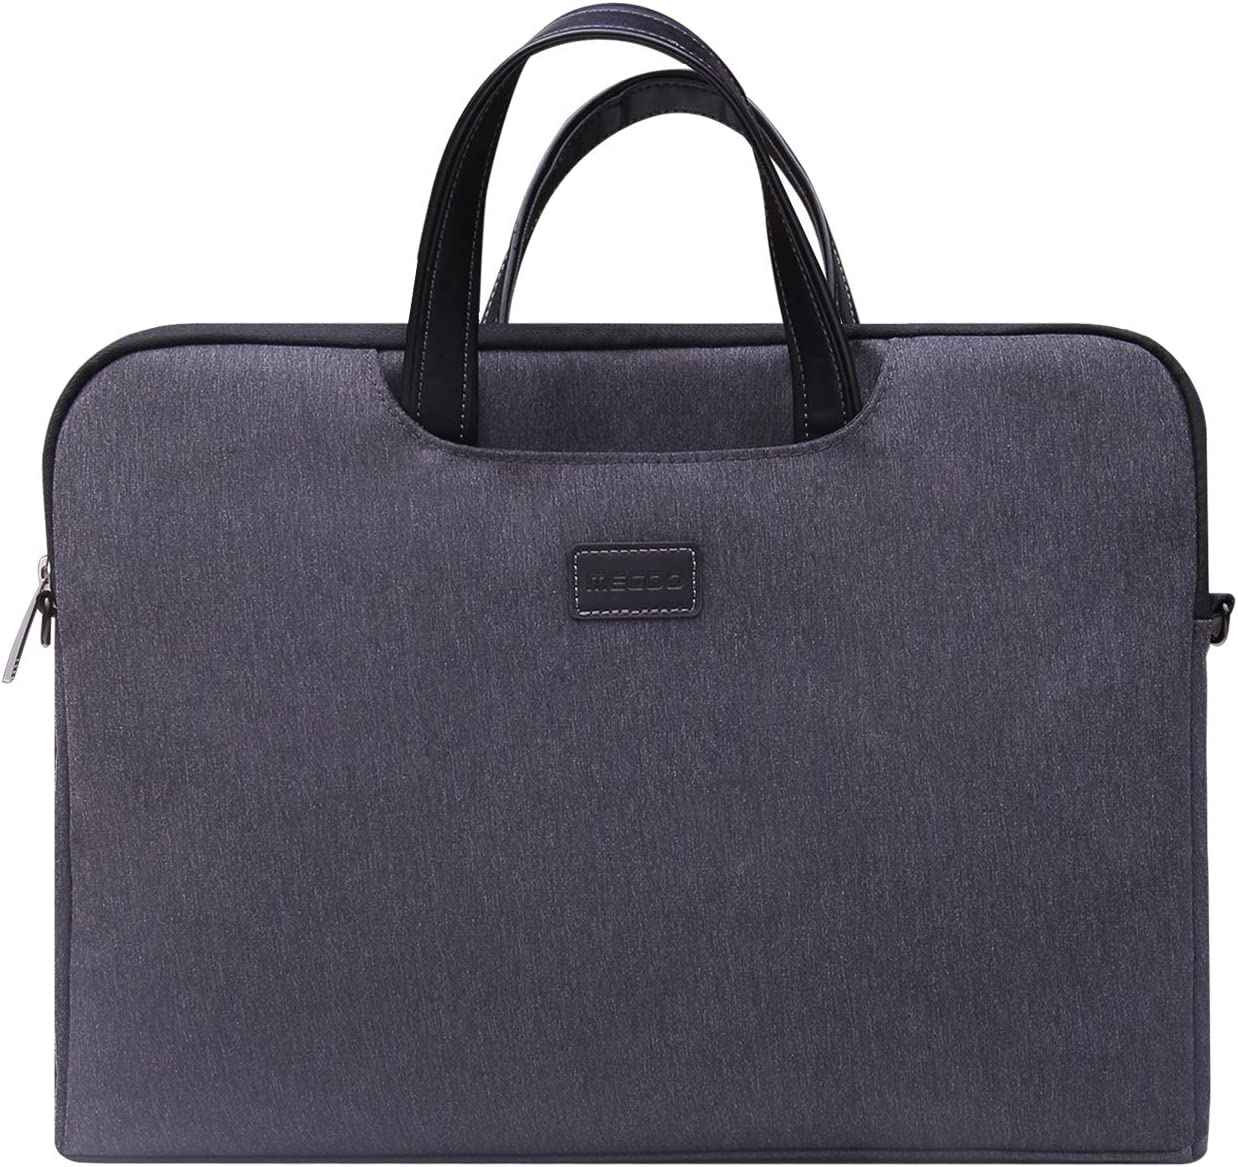 "Megoo 15inch Laptop Sleeve Case Handbag Briefcase for Surface Laptop 3/Book 2 15"" with Handle and Removable Shoulder Strap Compatible Surface Laptop 3/2/Book 2 13.5"" Surface Pro X/7/6/5/4/3 12.3"""